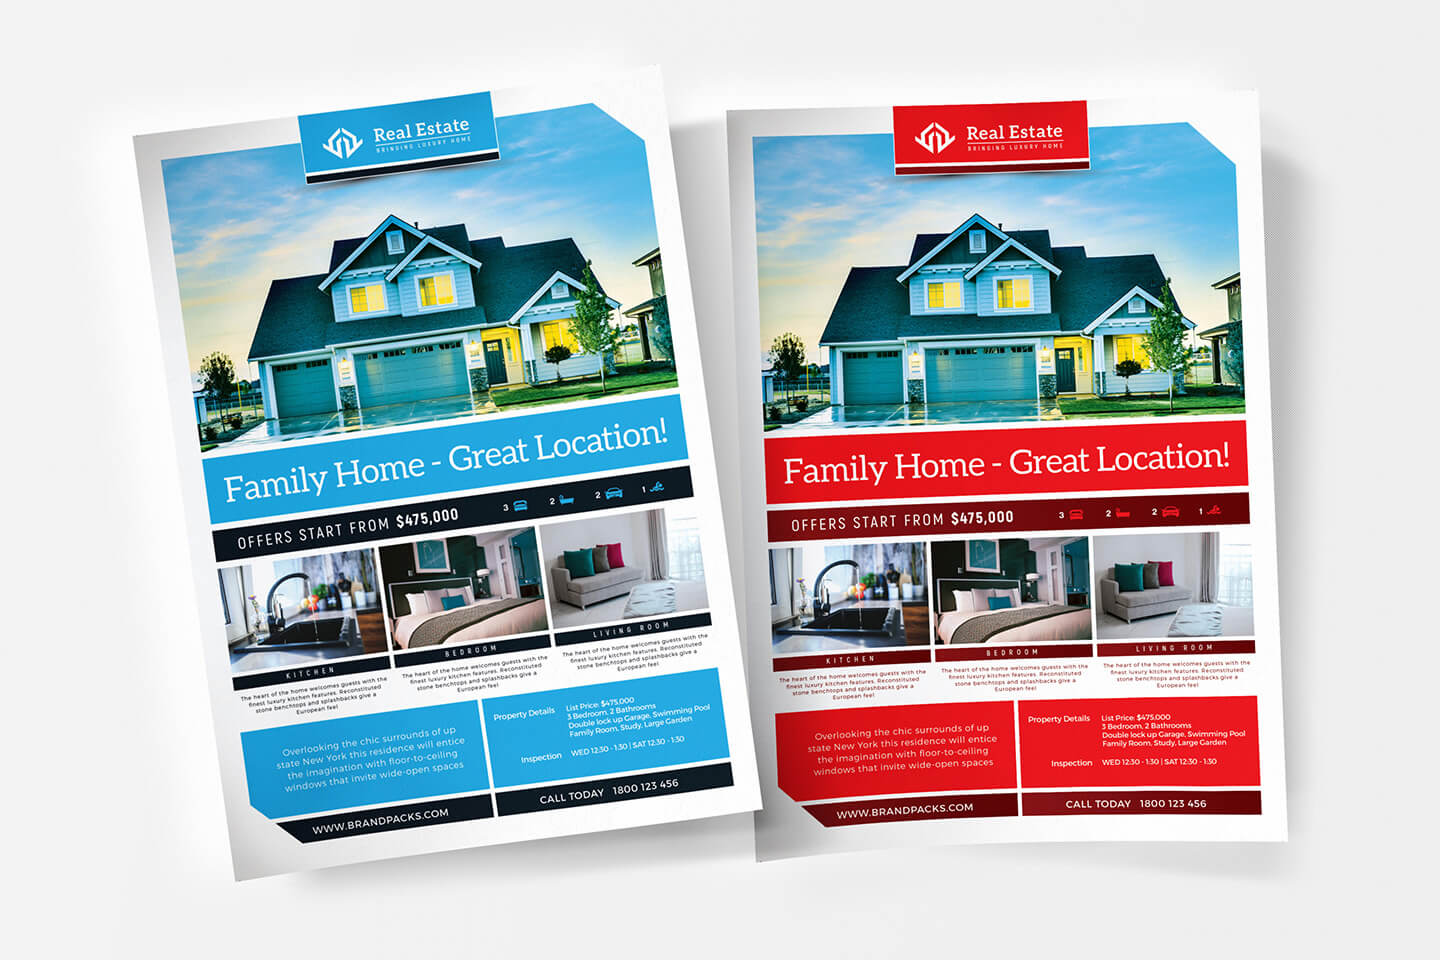 Free Real Estate Templates For Photoshop & Illustrator throughout Real Estate Brochure Templates Psd Free Download